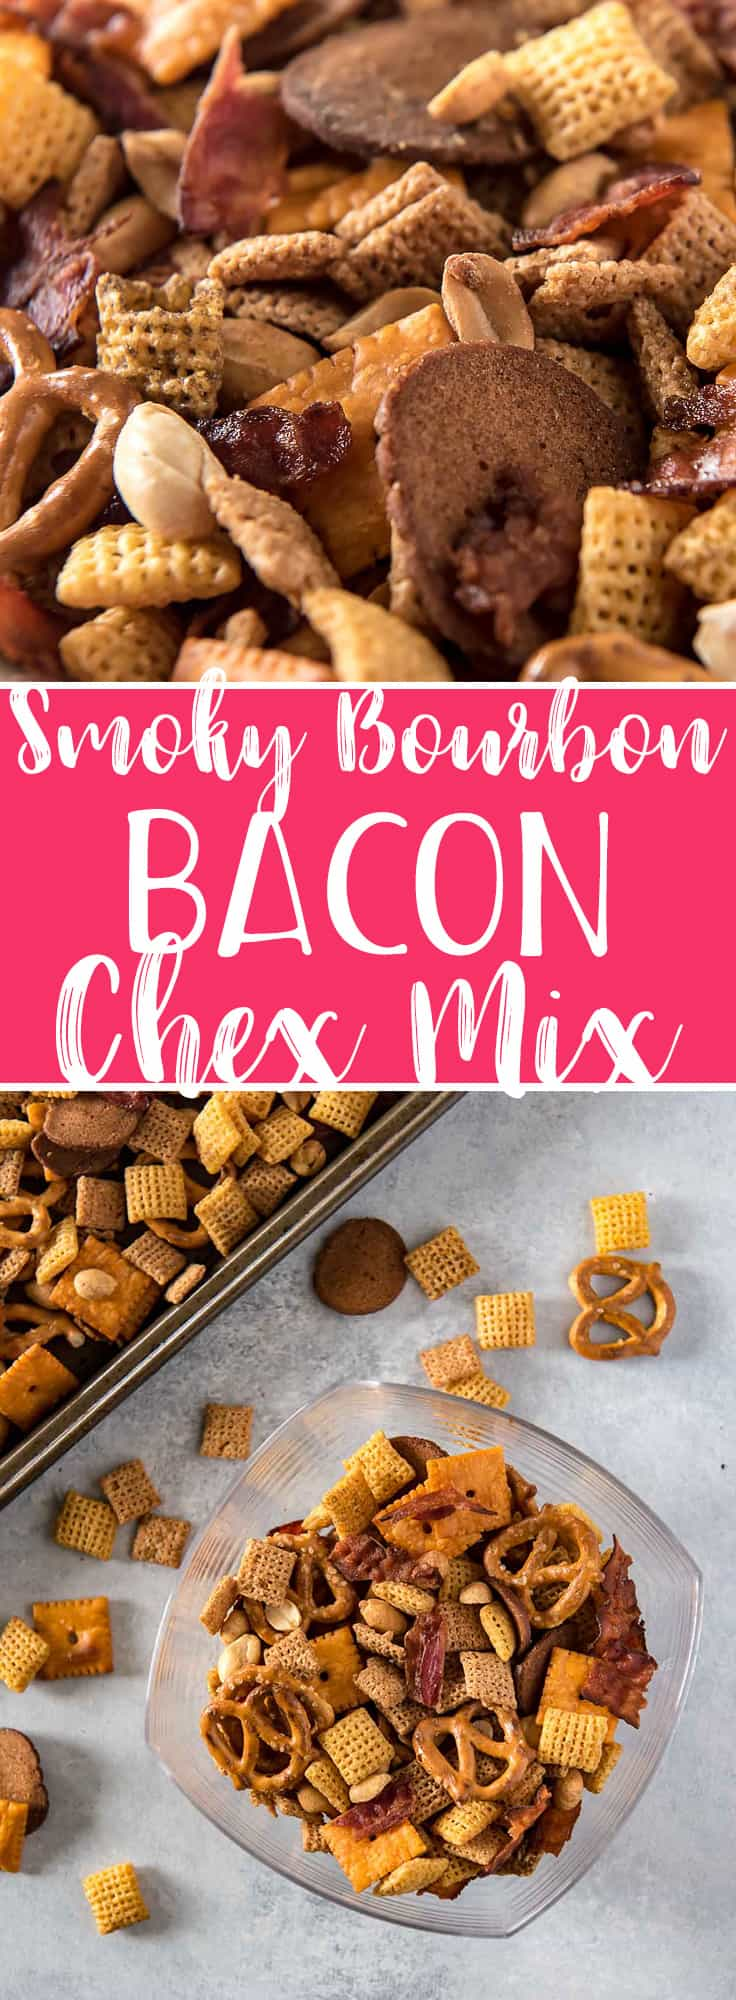 Bacon makes everything better, so don't settle for the plain old traditional recipe - thisSmoky Bourbon Bacon Chex Mix is the salty, crunchy, boozy version of the famous snack that you didn't know you were craving!